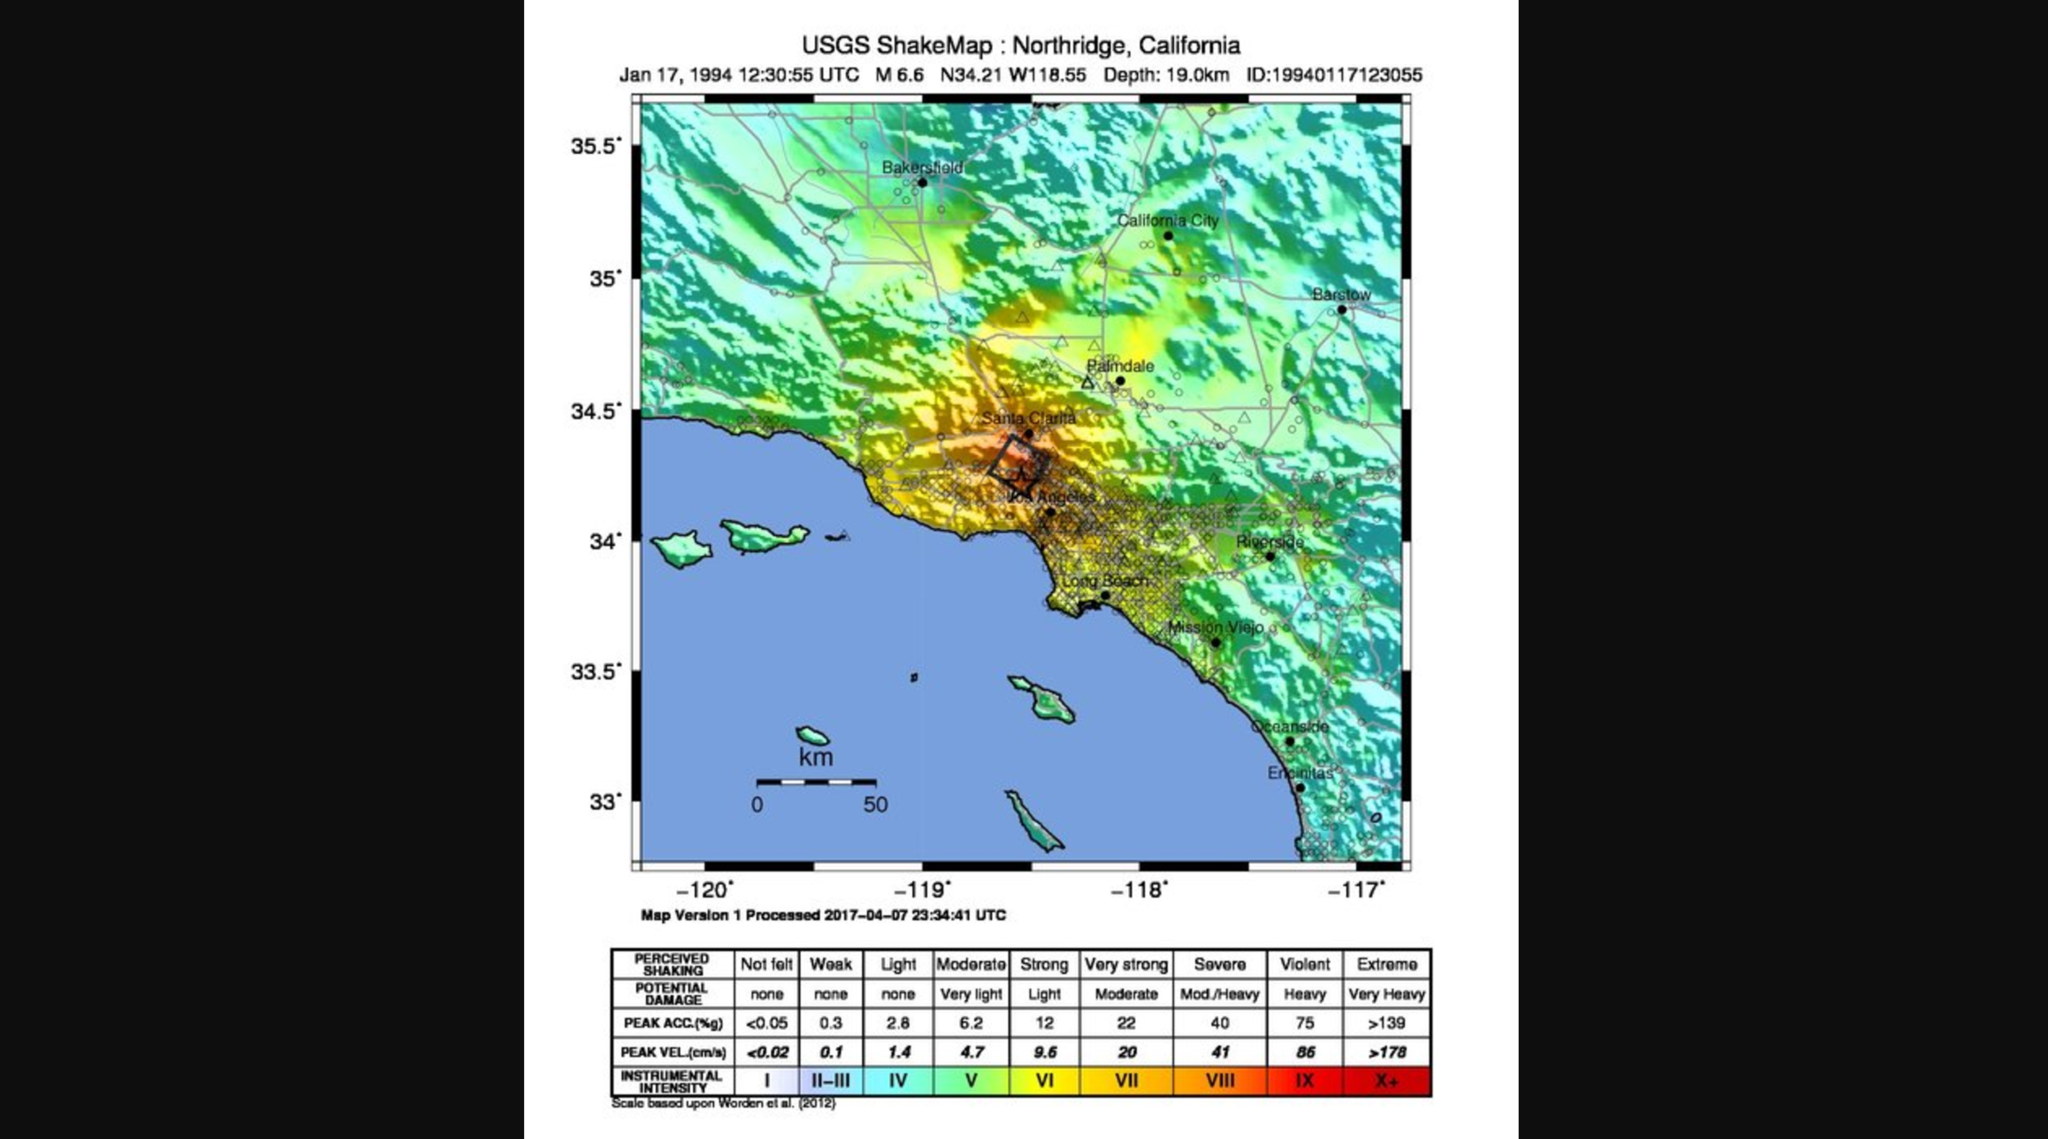 The magnitude 6.7 Northridge earthquake in 1994 produced intensity level 9 shaking — violent shaking — in a small section of the San Fernando Valley.